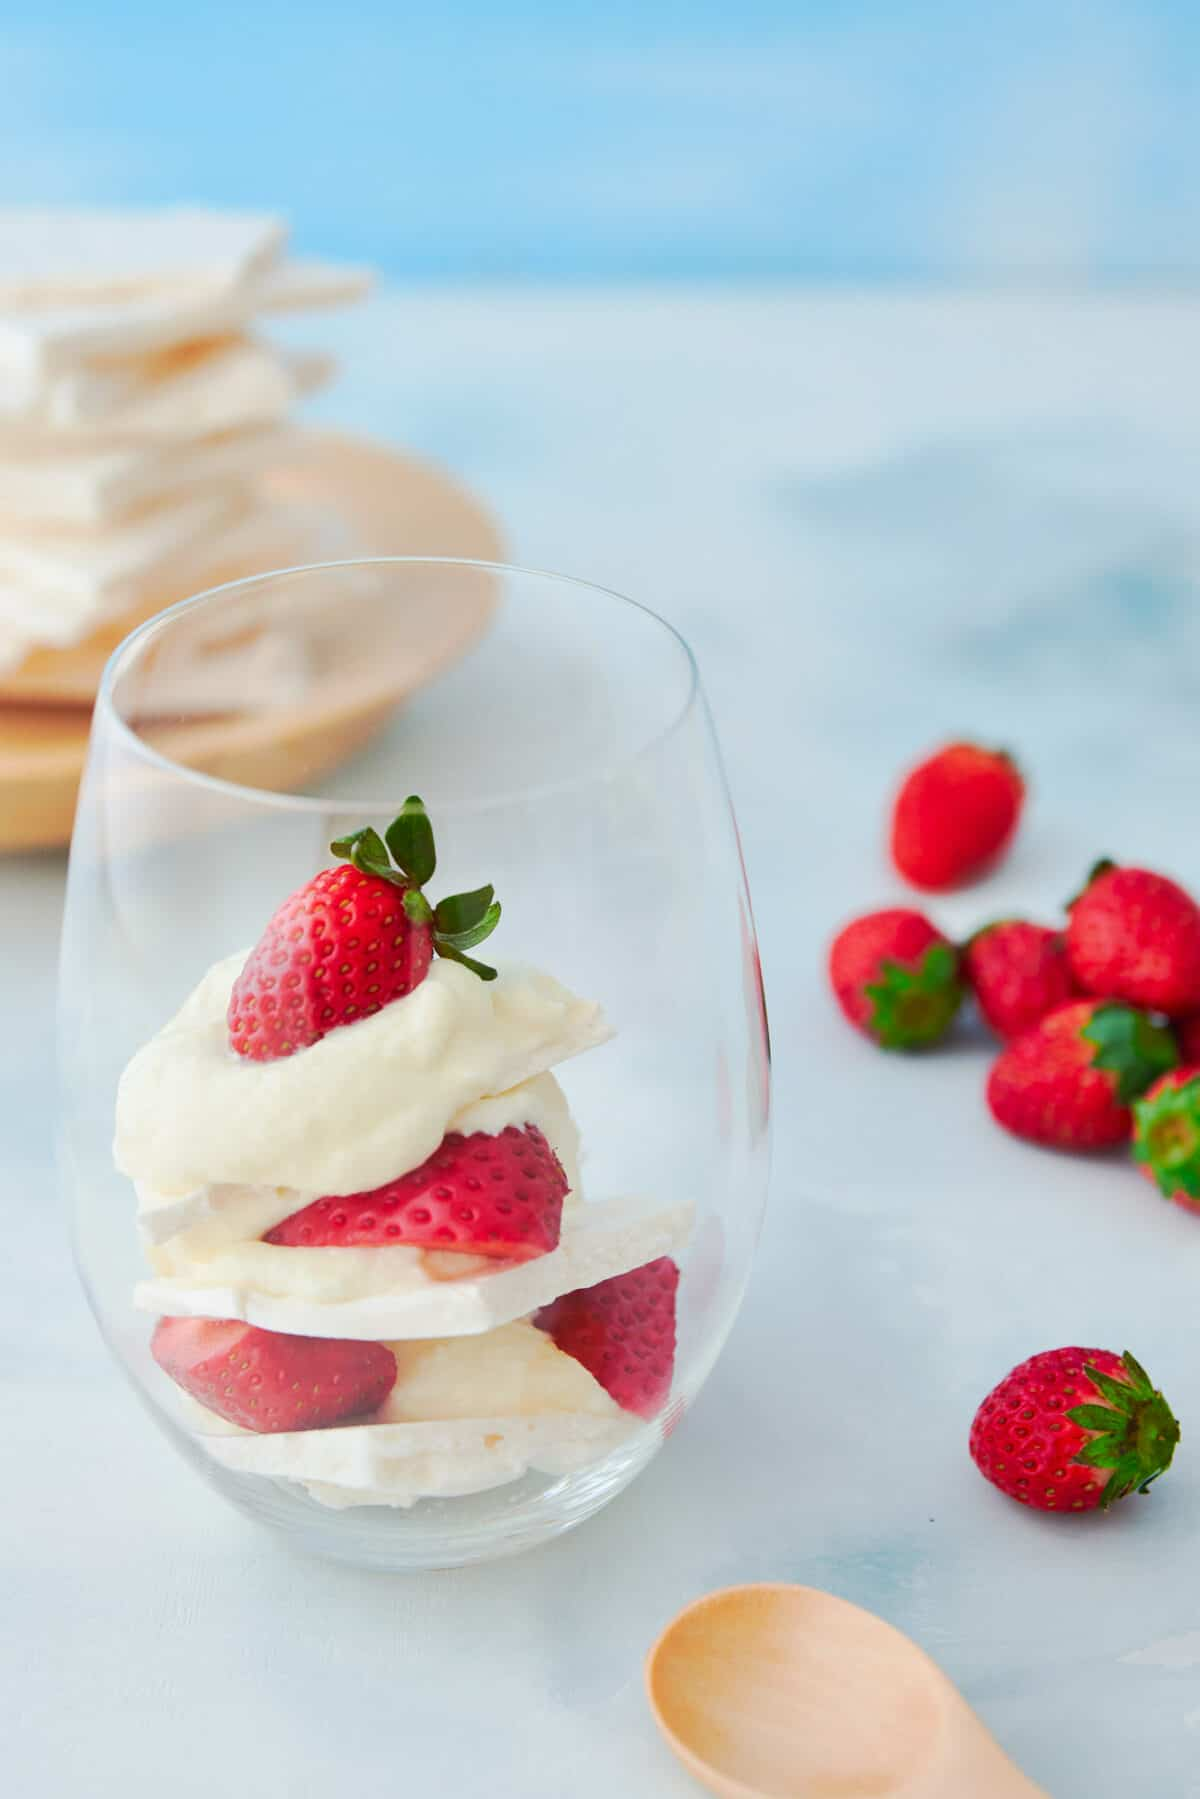 With fresh strawberries, white chocolate cream, and crisp meringue this Eton Mess recipe is a mind-blowinglh good dessert that's the perfect end to a spring dinner party.